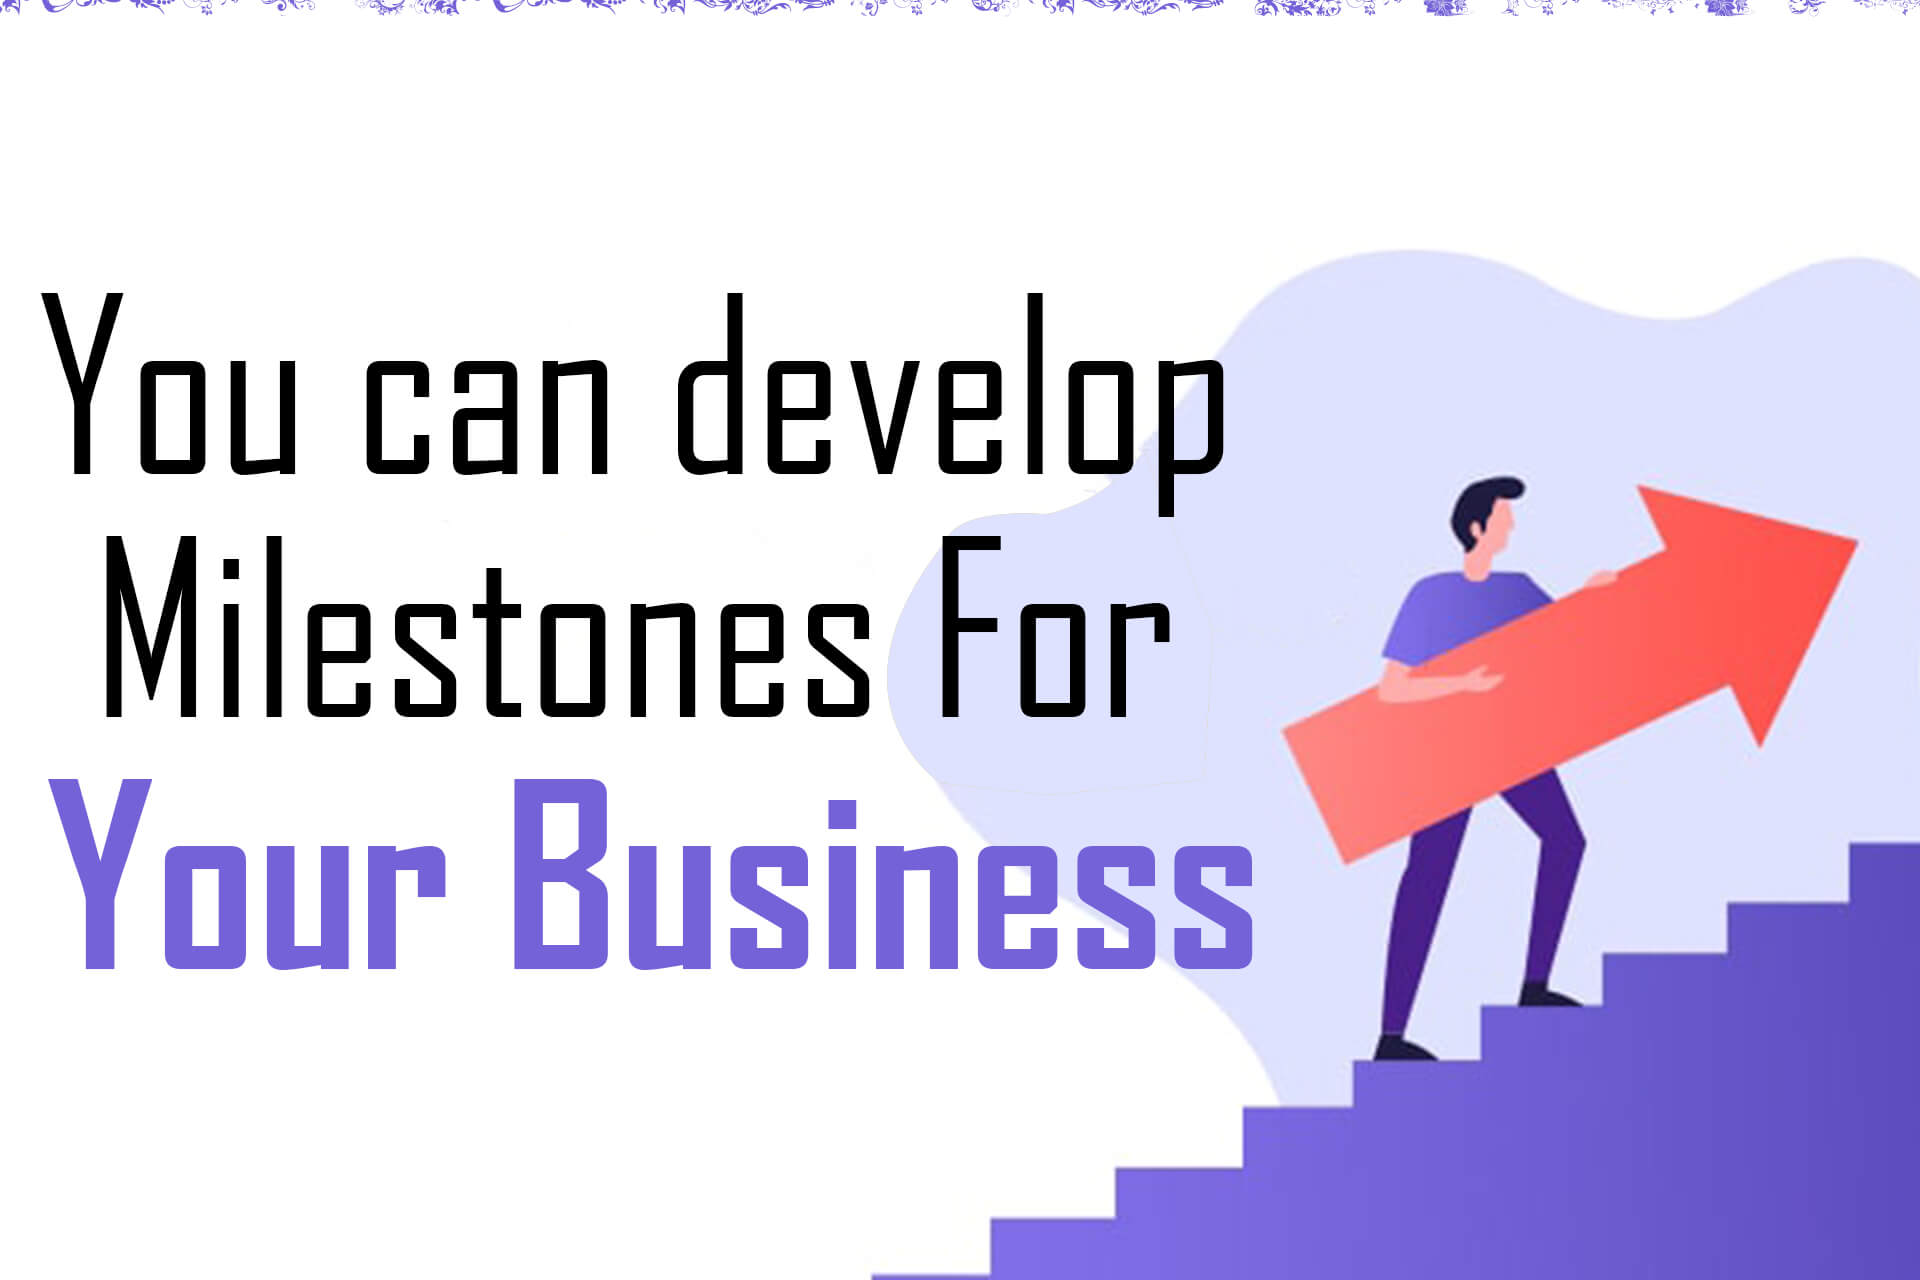 Business Plan will help you to develop milestones for your business